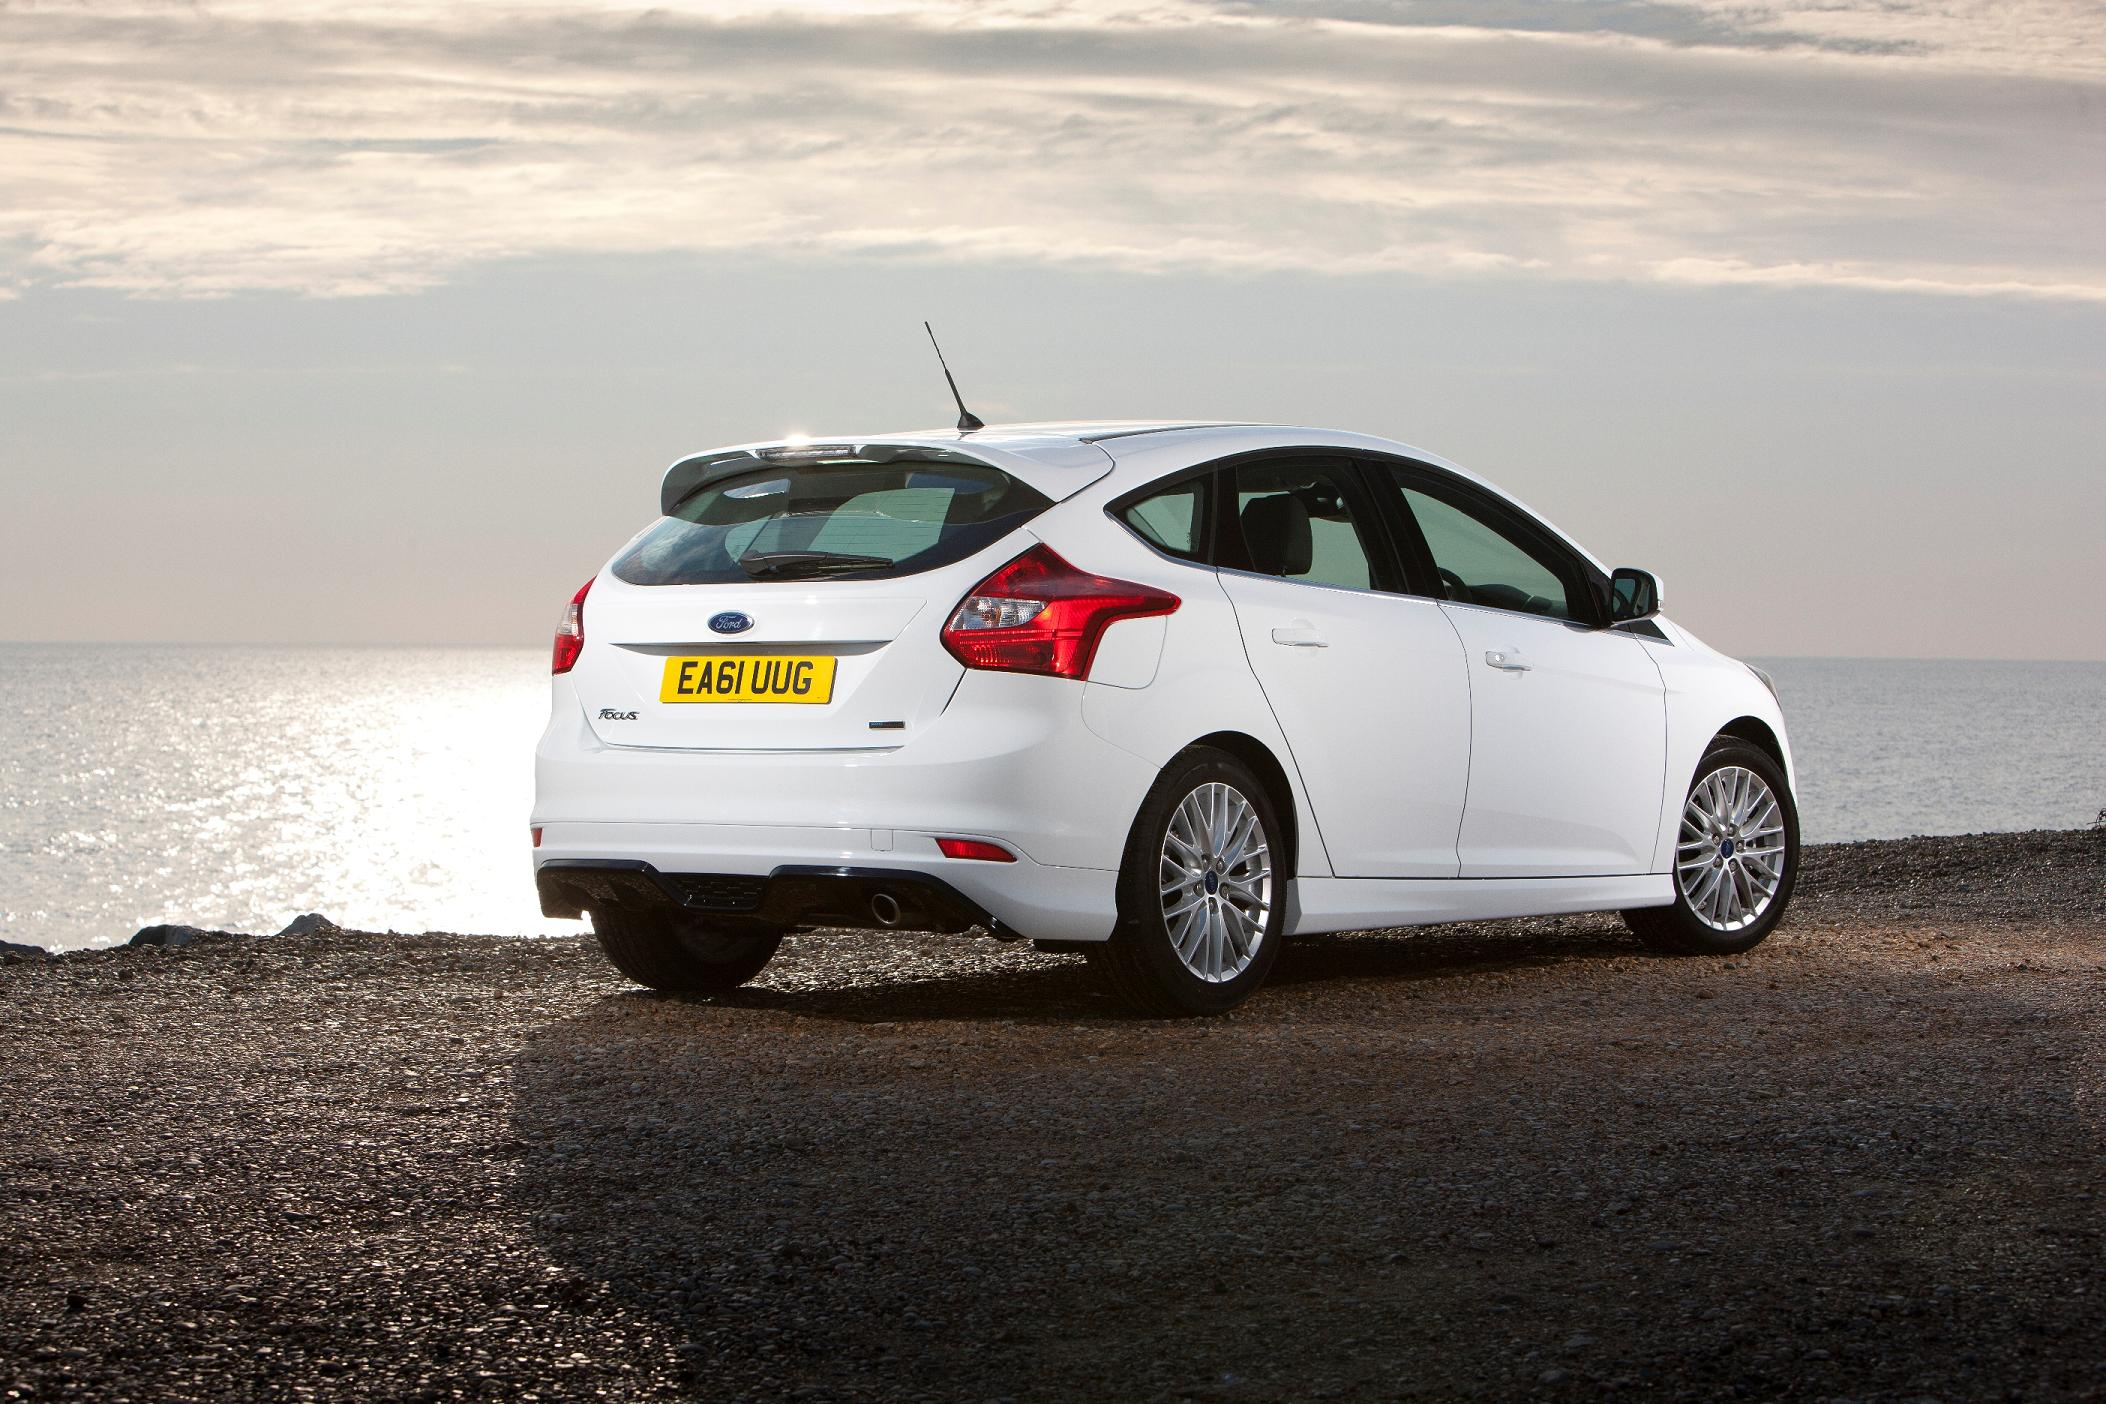 Ford Focus rear view in white